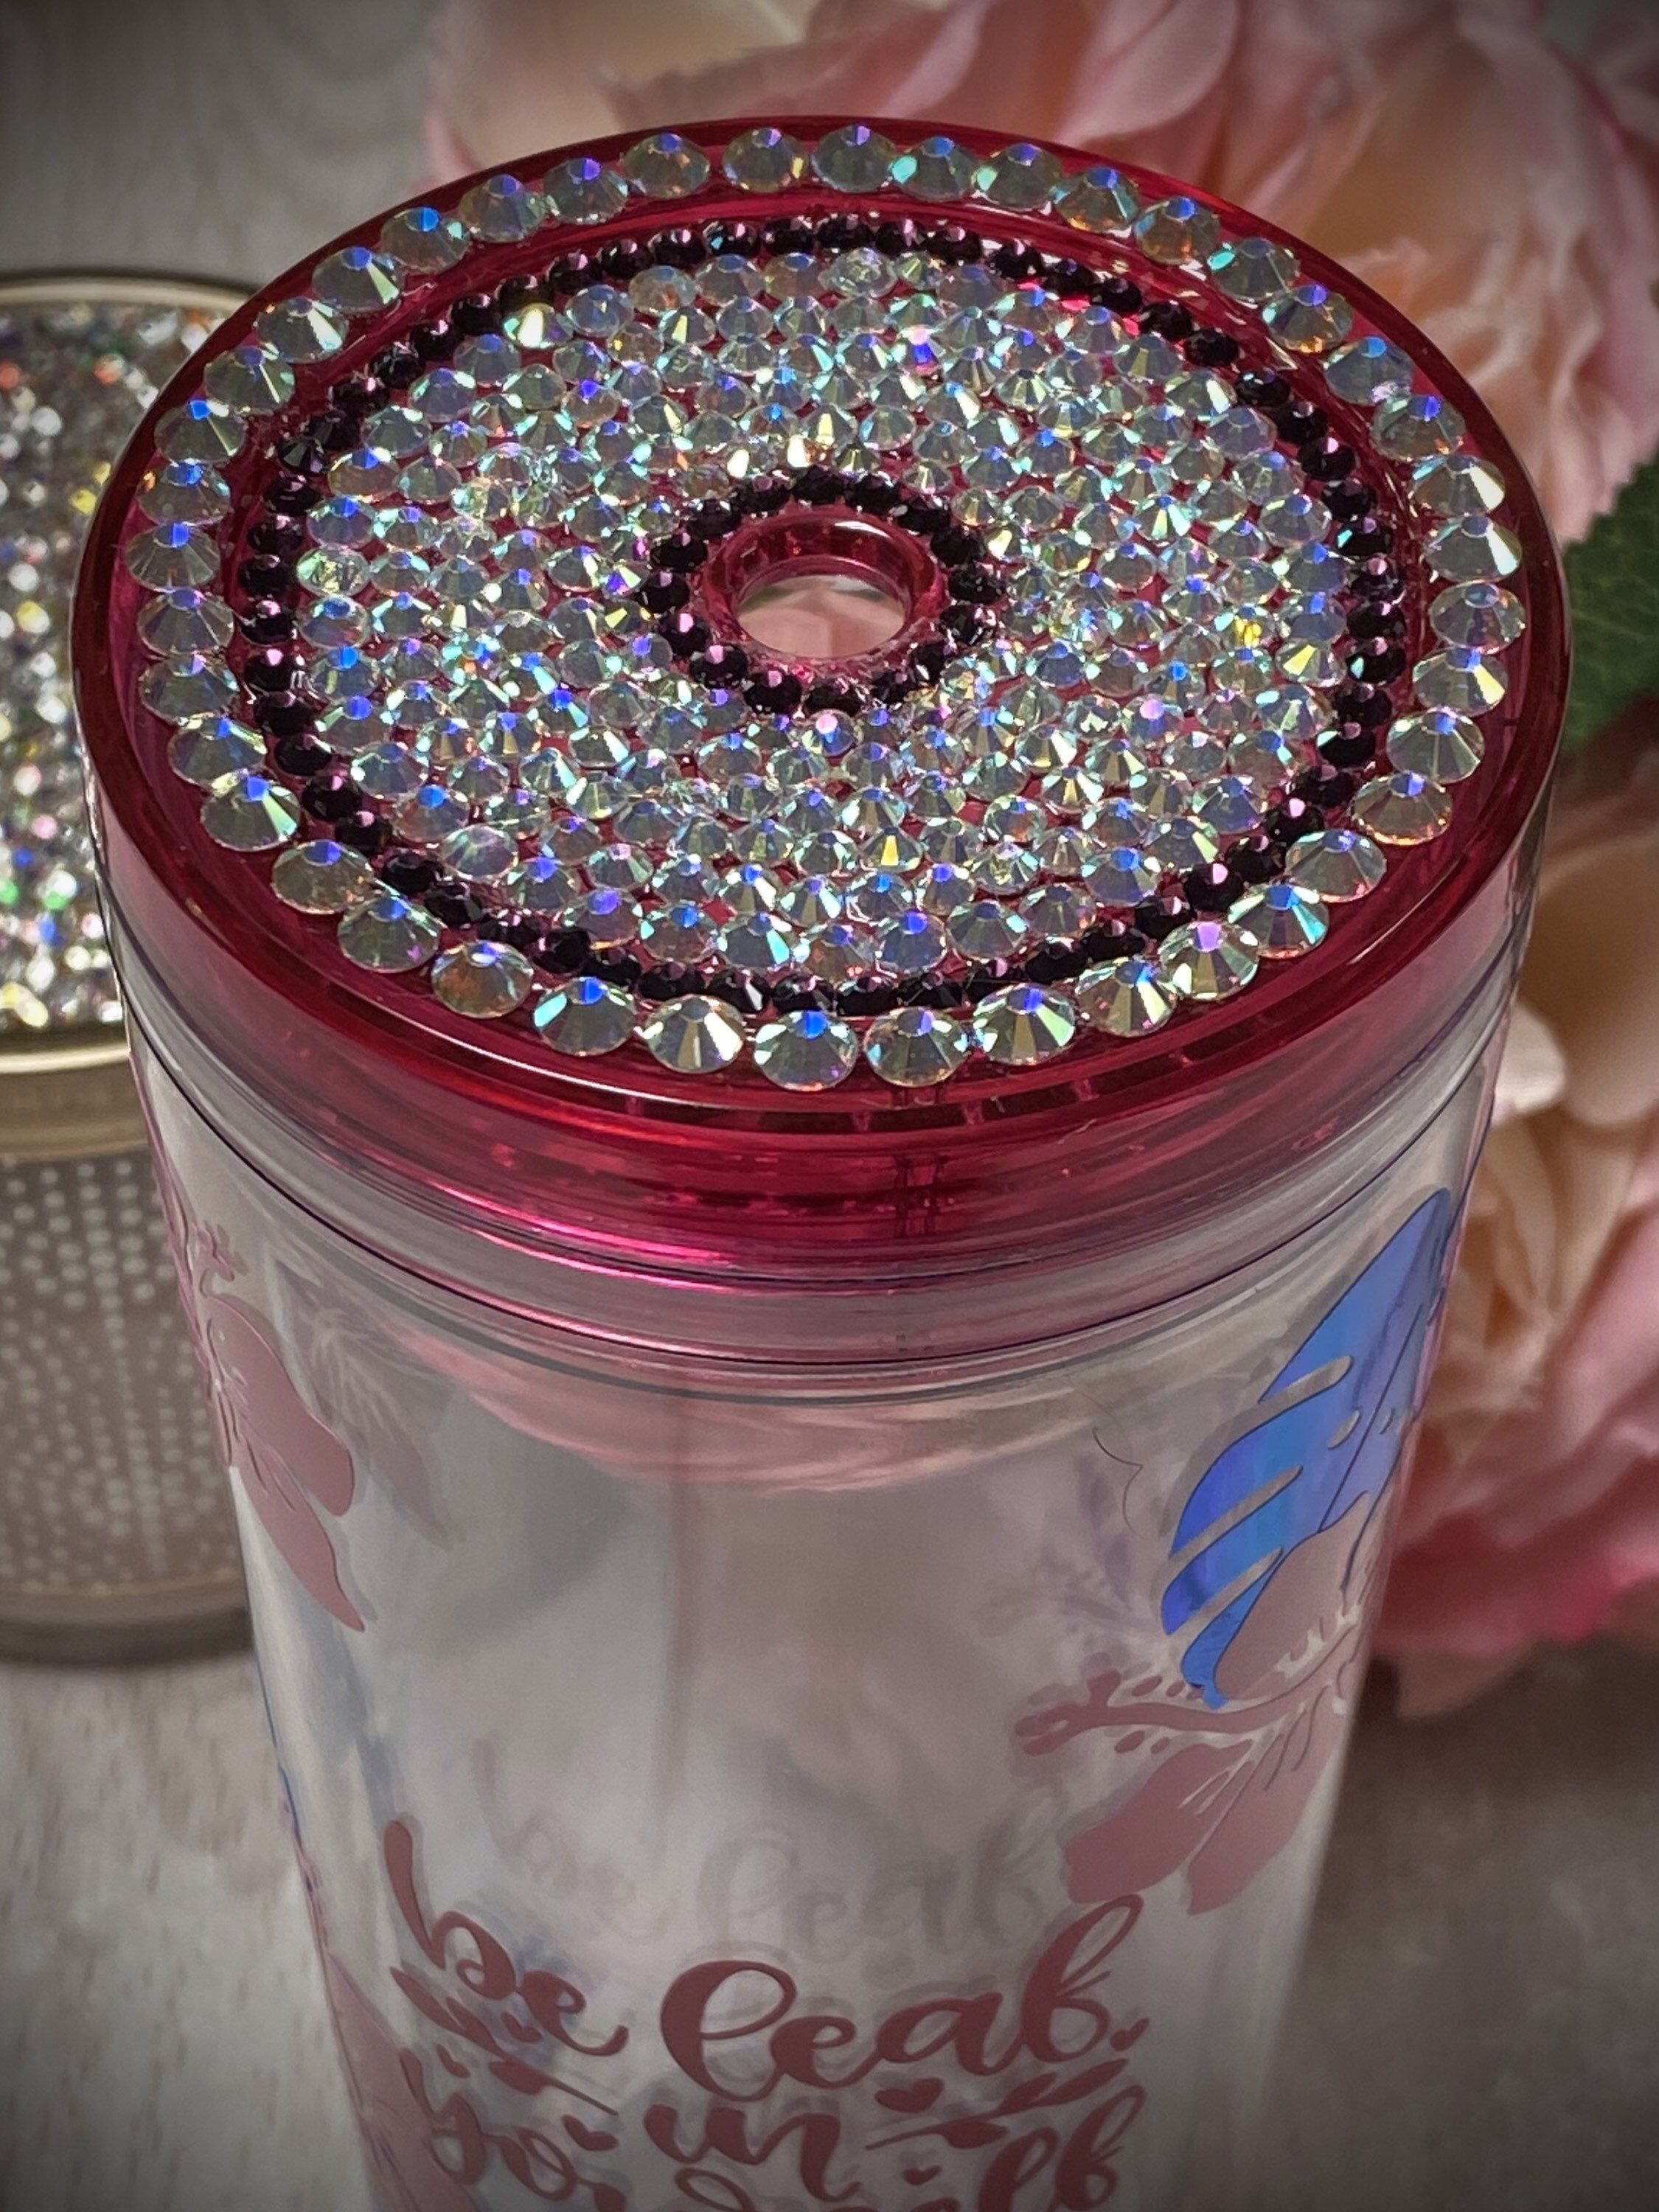 Tropical Acrylic Skinny Tumbler Personalized Customizable Etsy In 2020 Skinny Tumblers Reusable Tumbler Drinking Cup